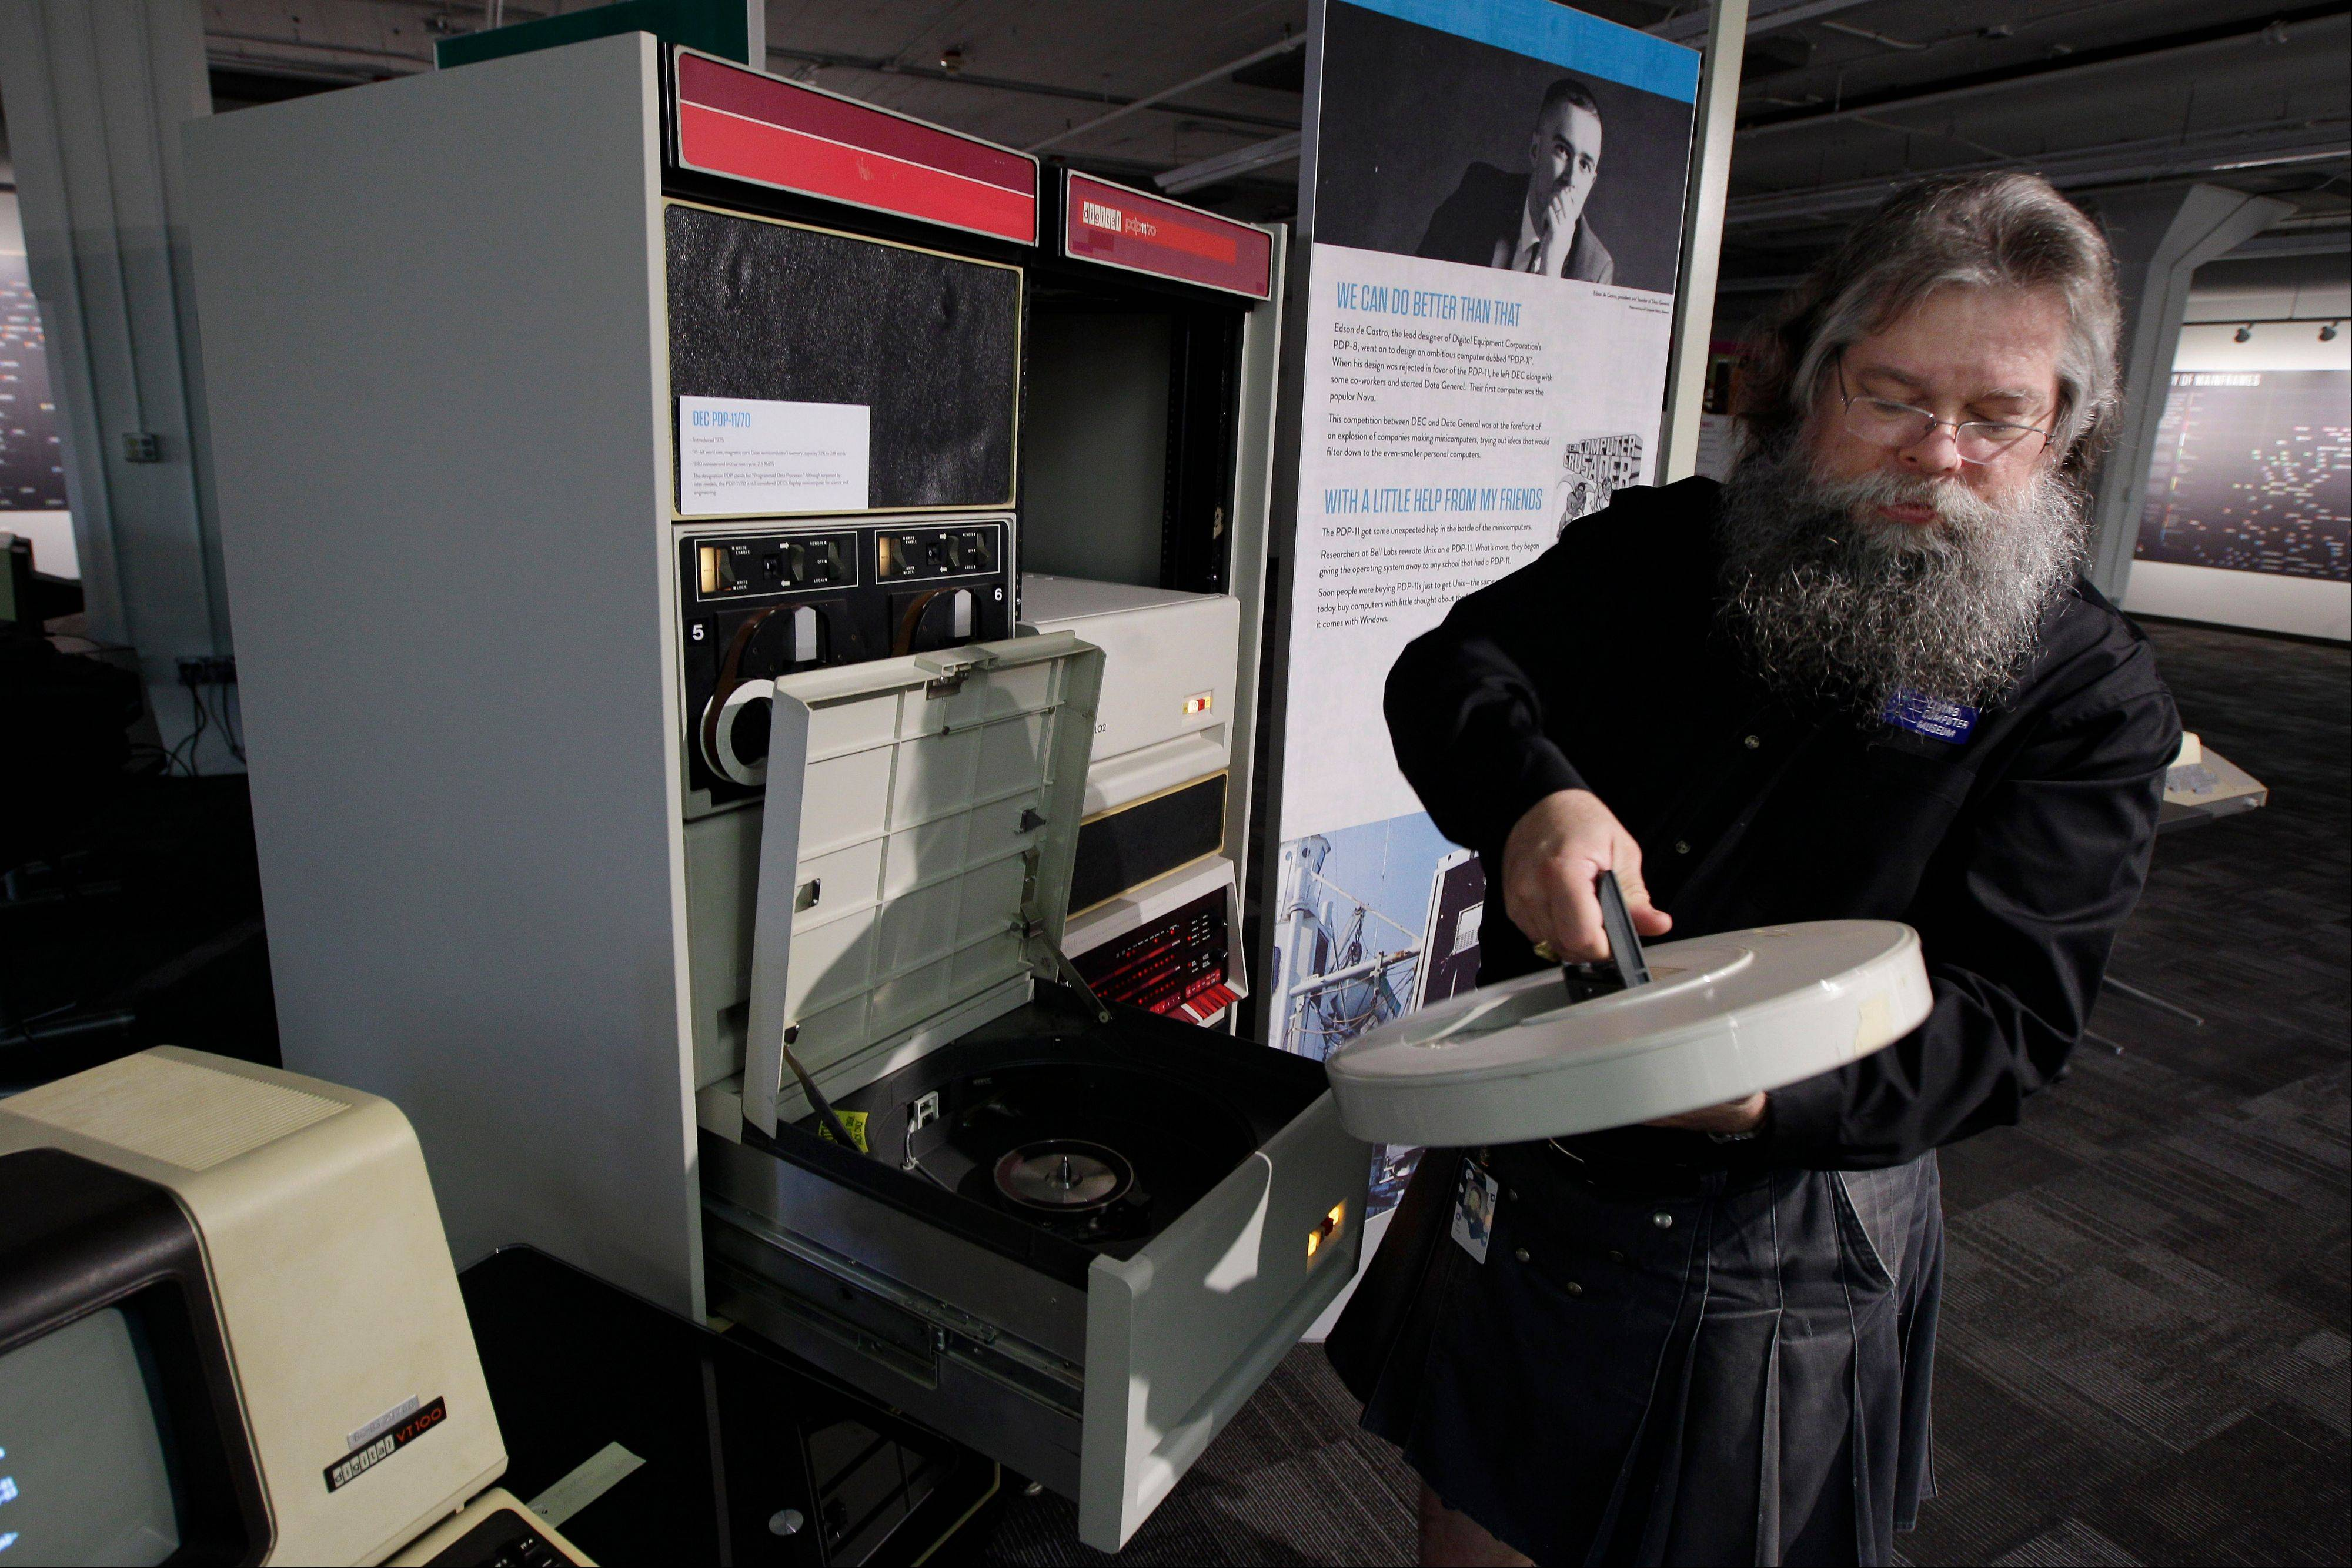 Ian King, senior vintage systems engineer at the Living Computer Museum in Seattle, loads a large disk drive into a working DEC 11/70 minicomputer from 1975. The machine is part of the collection of running computers at Paul Allen's newly opened Living Computer Museum.